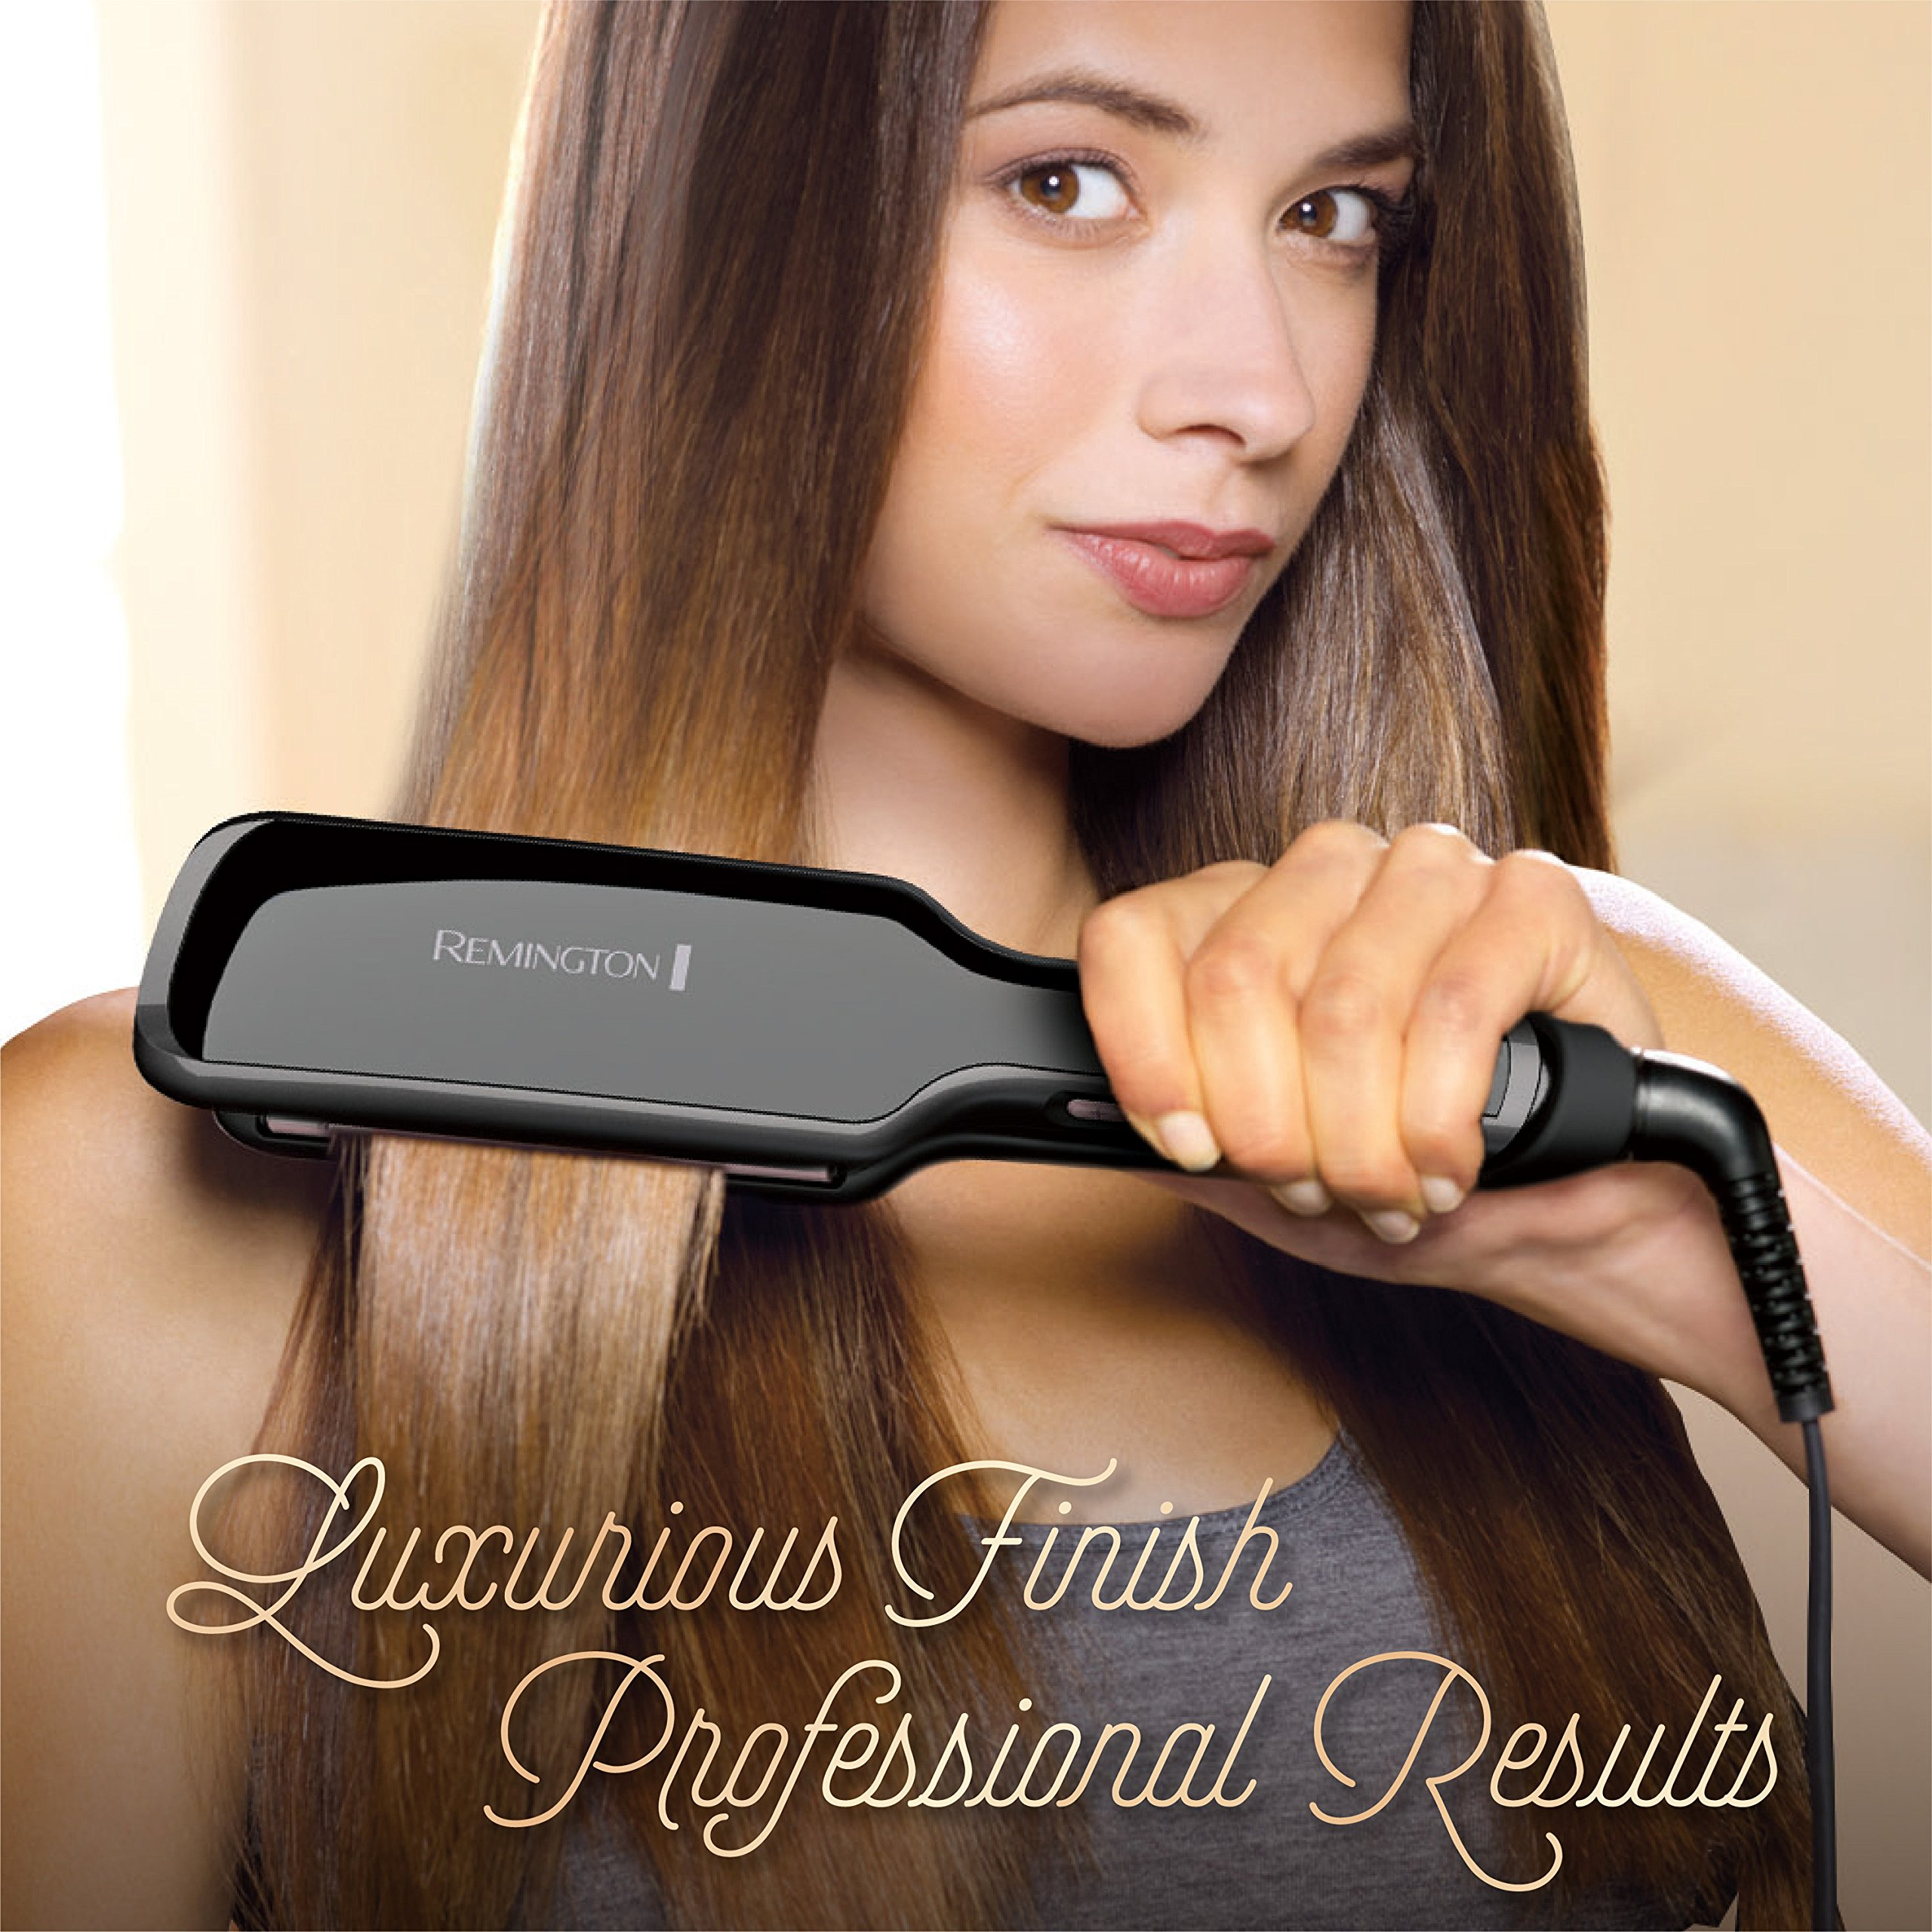 Remington Pro 2'' Flat Iron with Pearl Ceramic Technology and Digital Controls, Black, S9520 by Remington (Image #6)